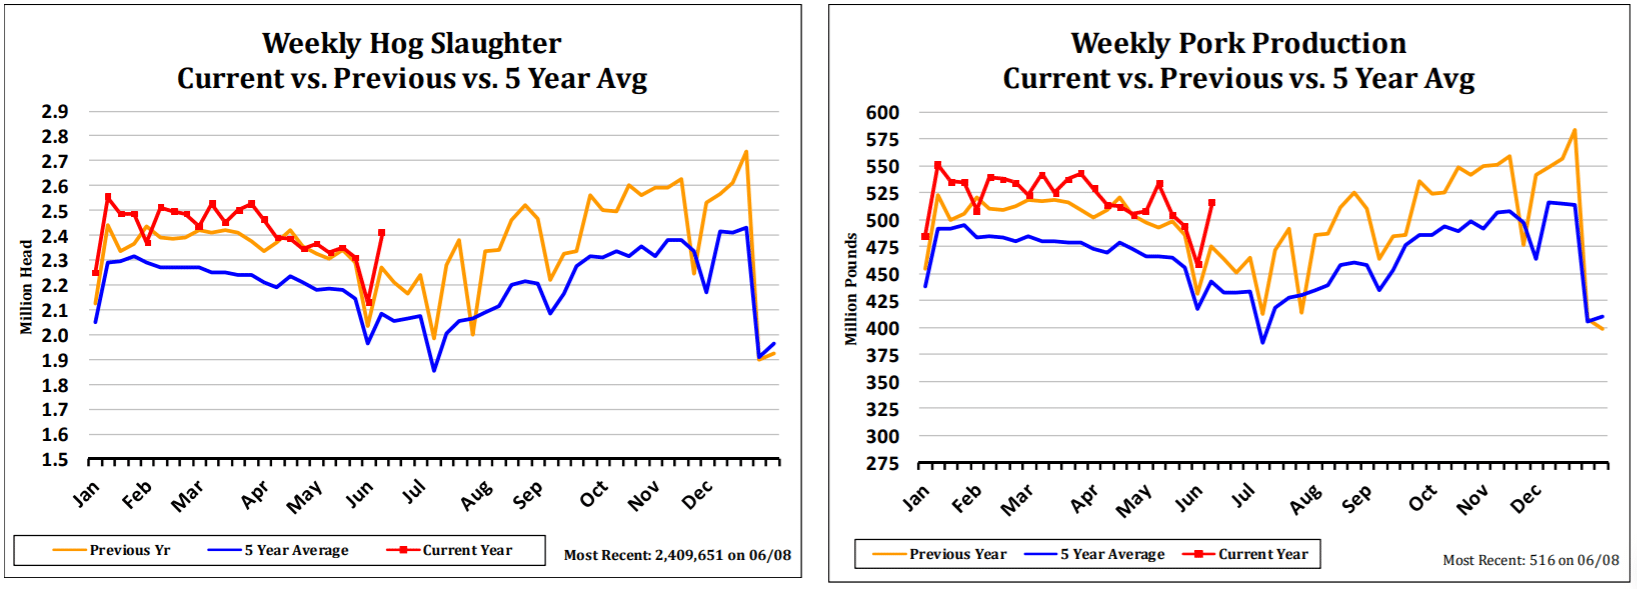 Hog Slaughter & Pork Production Comparison Charts